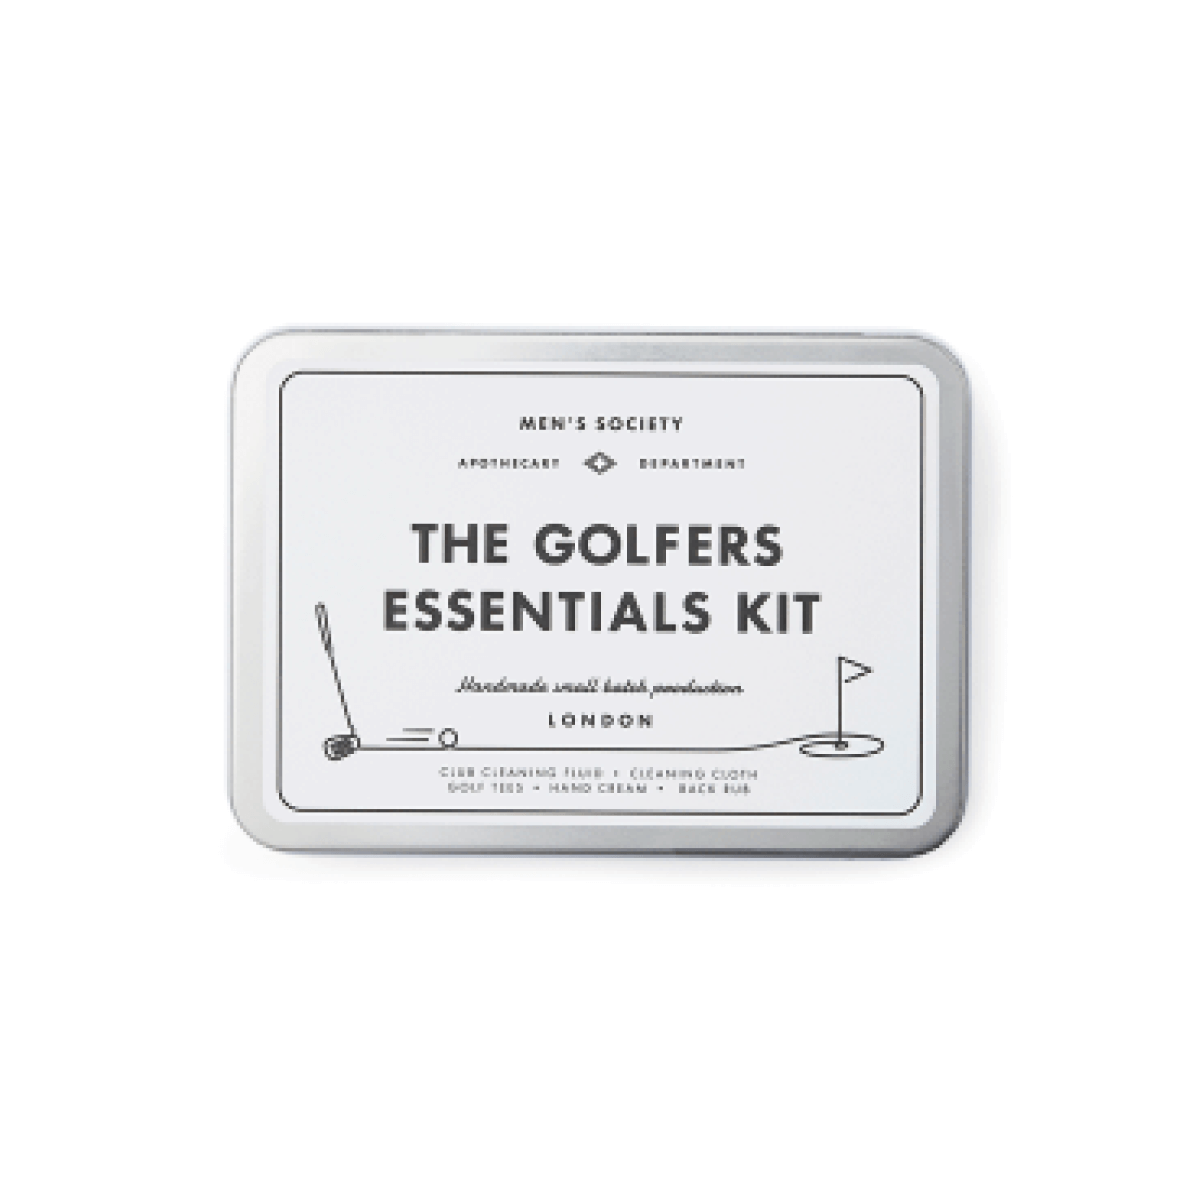 Men's Society The Golfer's Essentials Kit